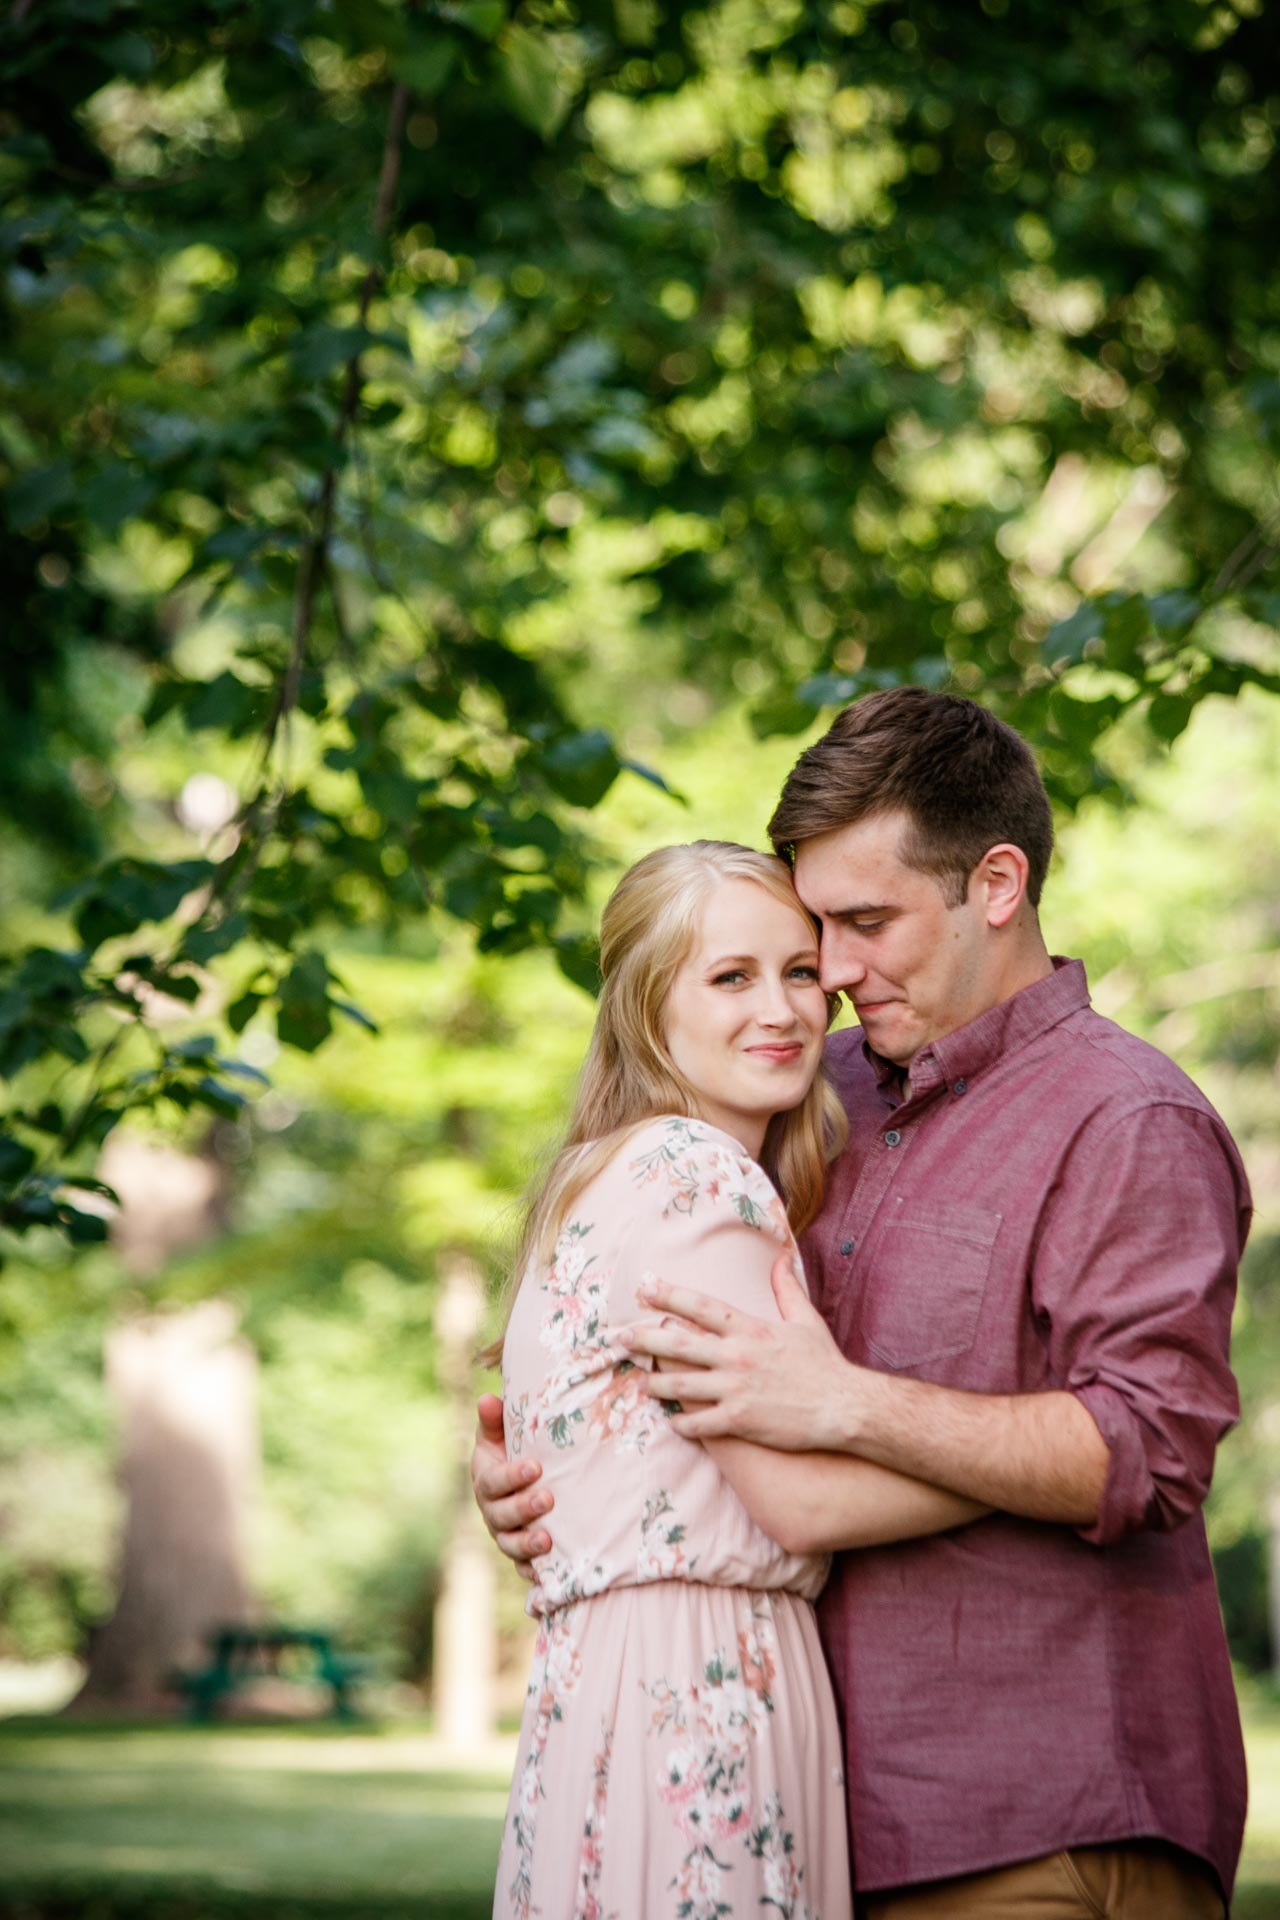 lauren-william-engagement-riverside-park-neenah-adam-shea-photography-green-bay-appleton-neenah-photographer-9.jpg